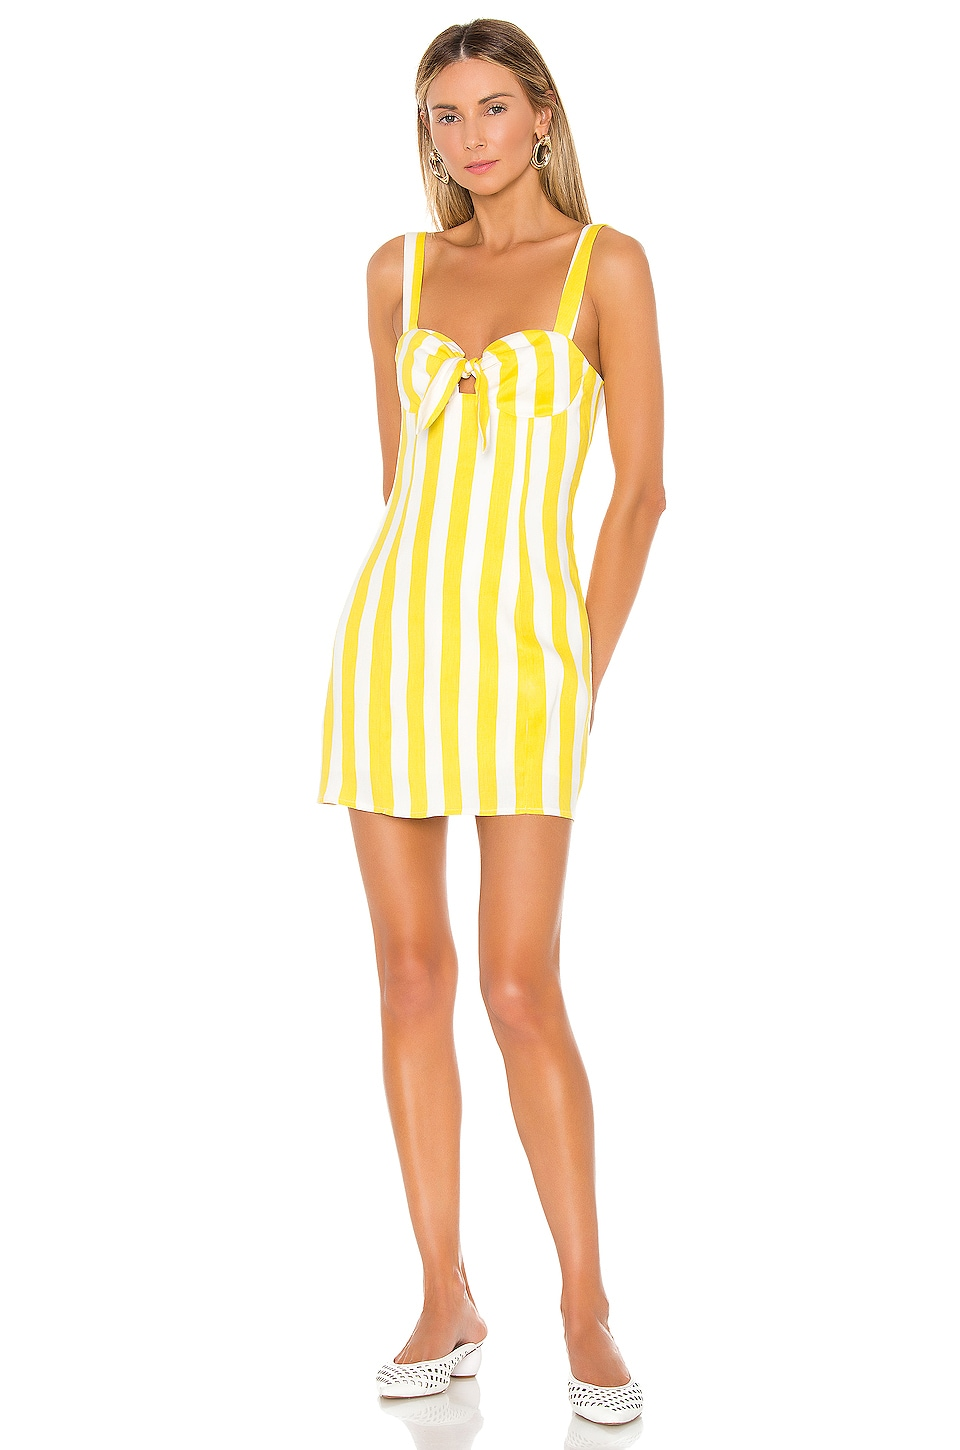 Lovers + Friends Adelle Mini Dress in Lemon Stripe